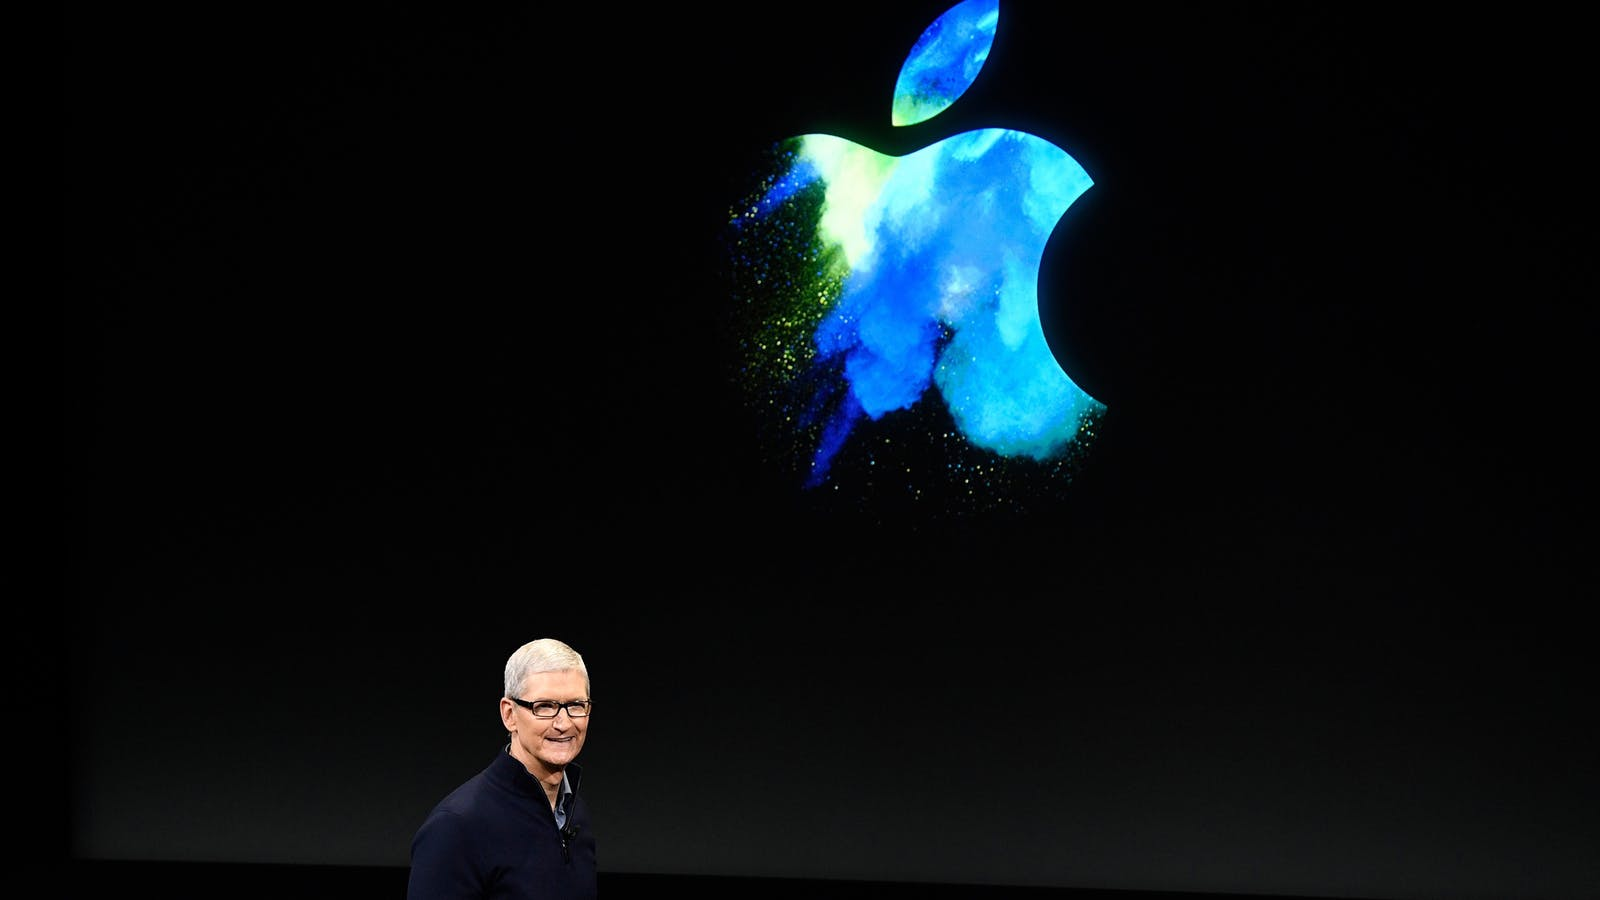 Apple CEO Tim Cook at a MacBook event on Thursday. Photo by Bloomberg.